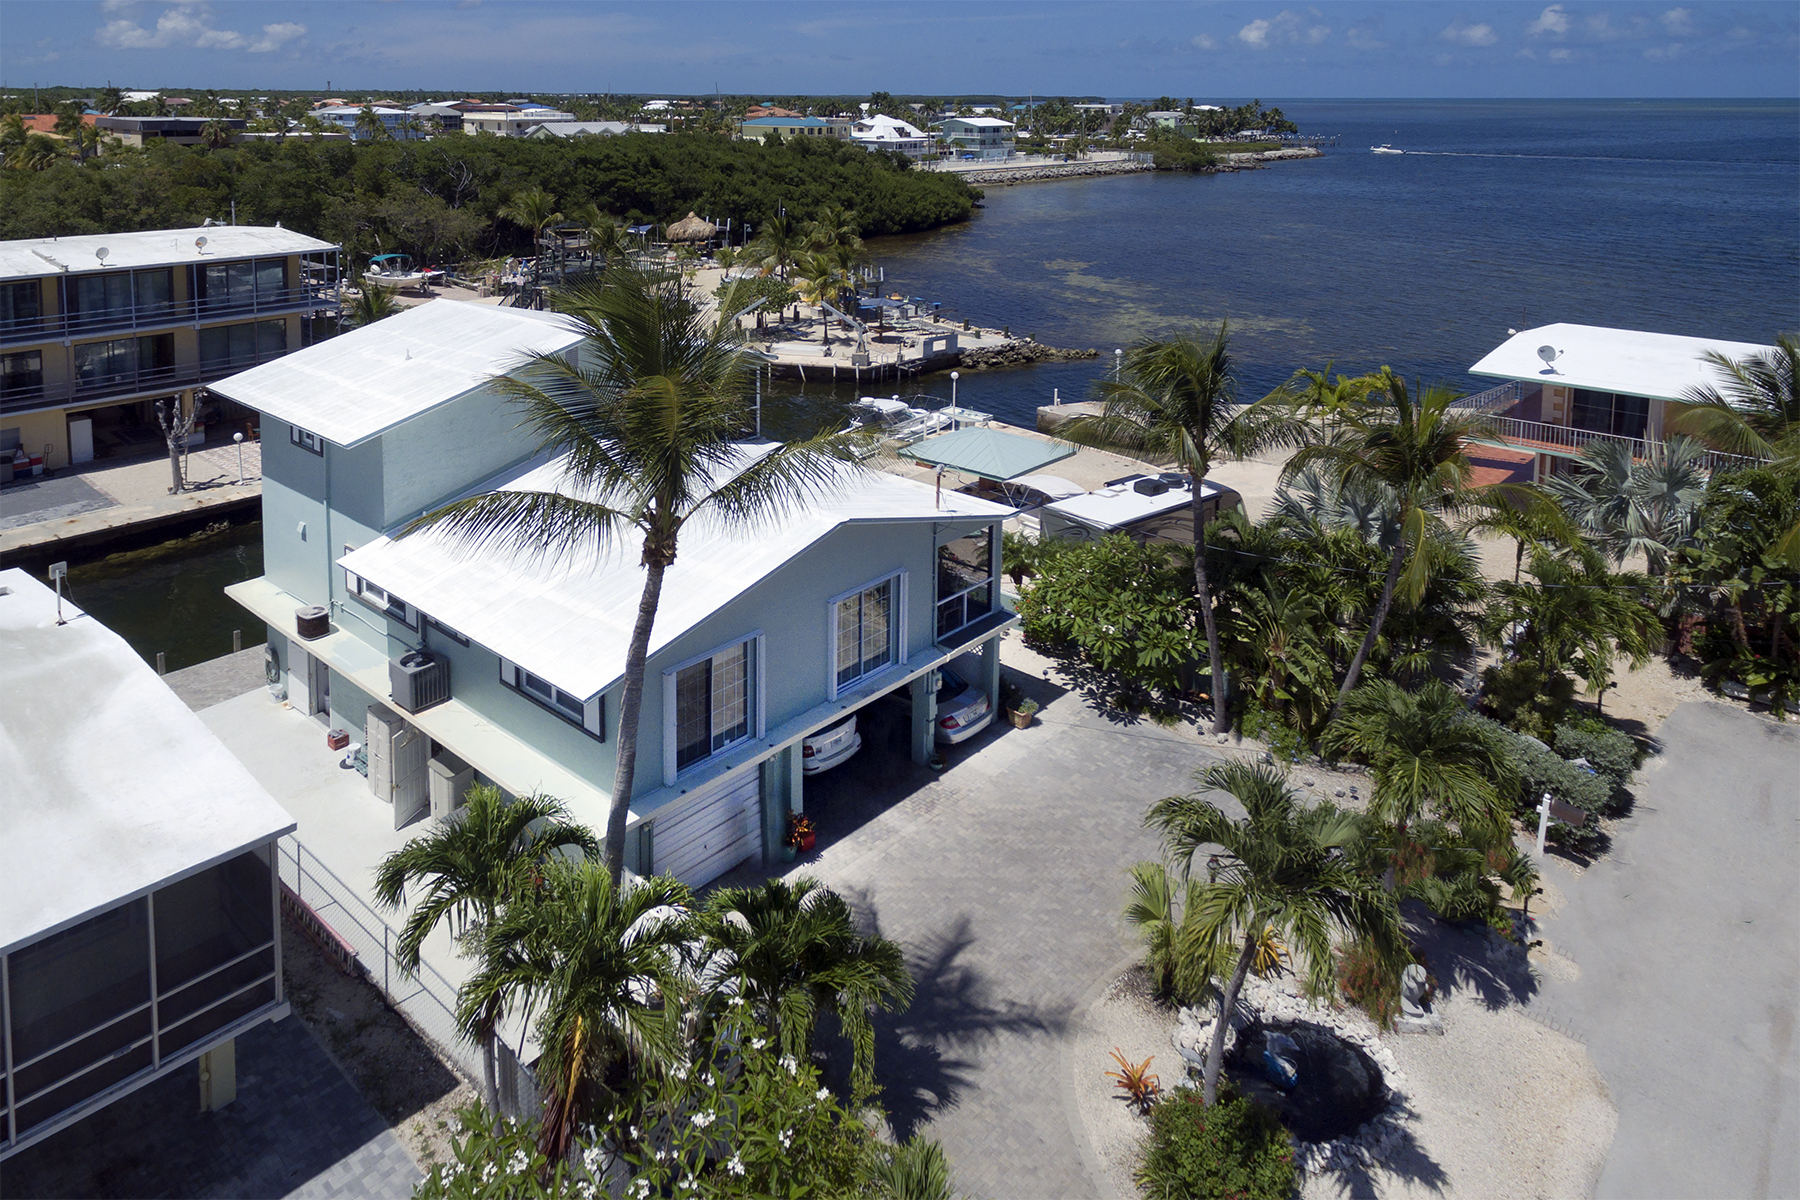 Single Family Home for Sale at Sweeping Ocean Views 84 Seagate Blvd Key Largo, Florida, 33037 United States